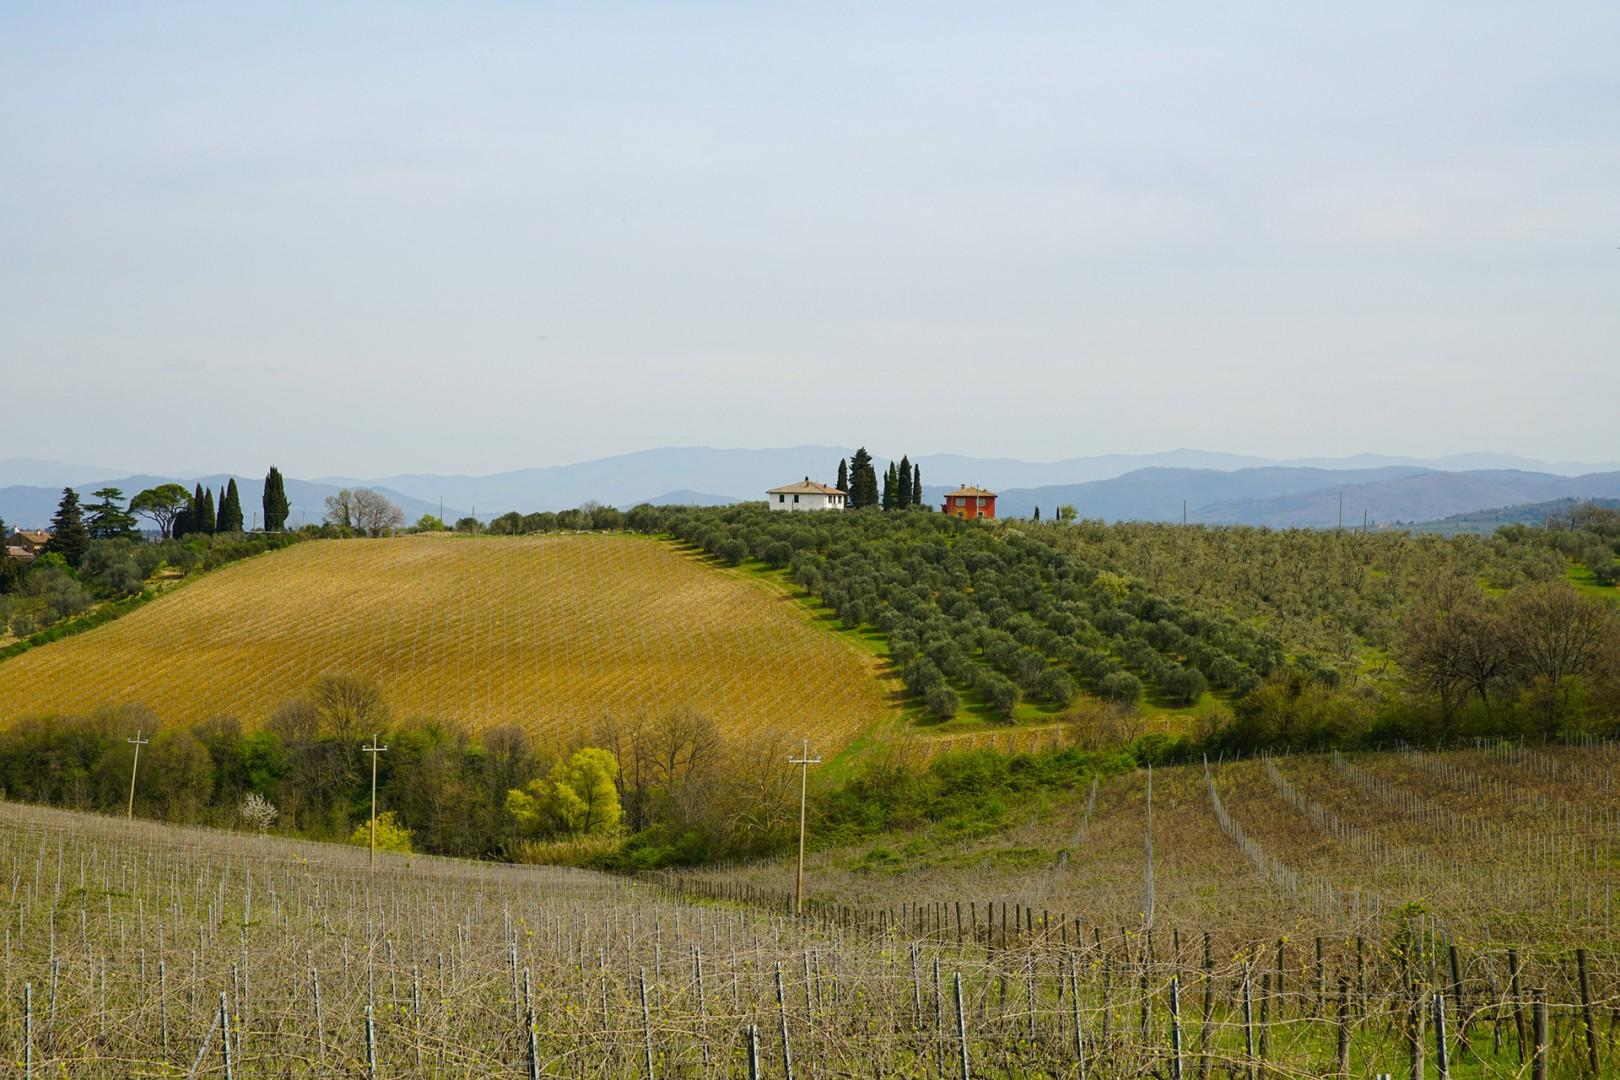 Beautiful views of the vineyards and Tuscan hills.